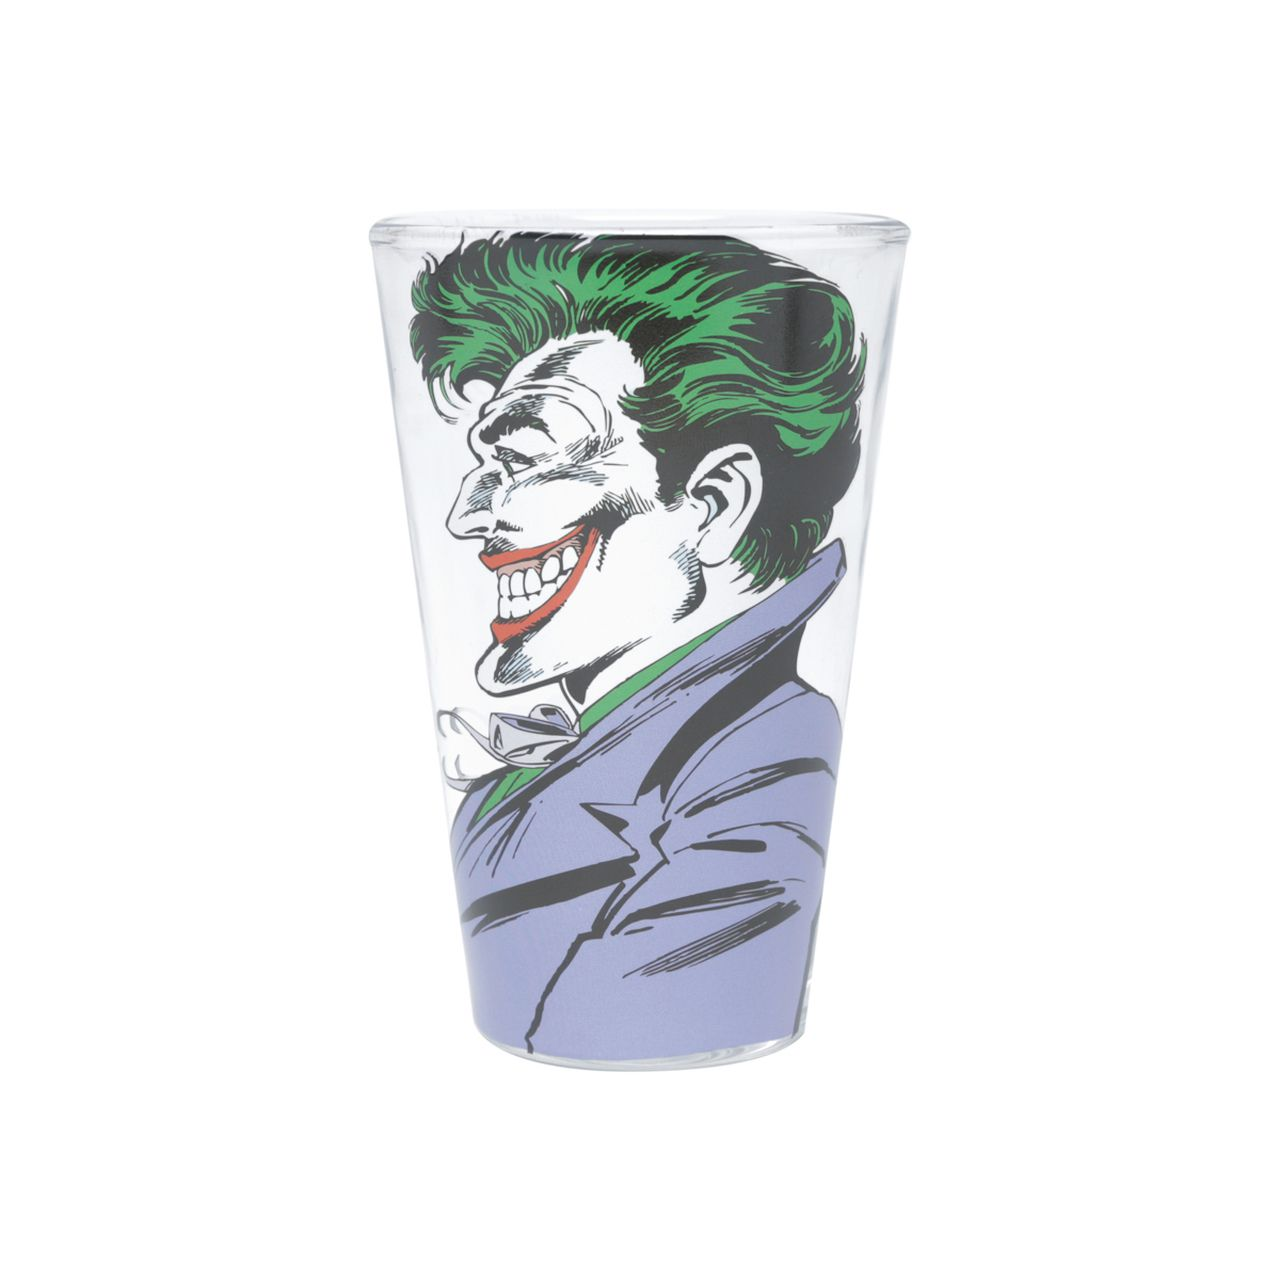 Set 2 Copos de Vidro Batman & Coringa (Joker) Dc Comics (300ml) - Urban